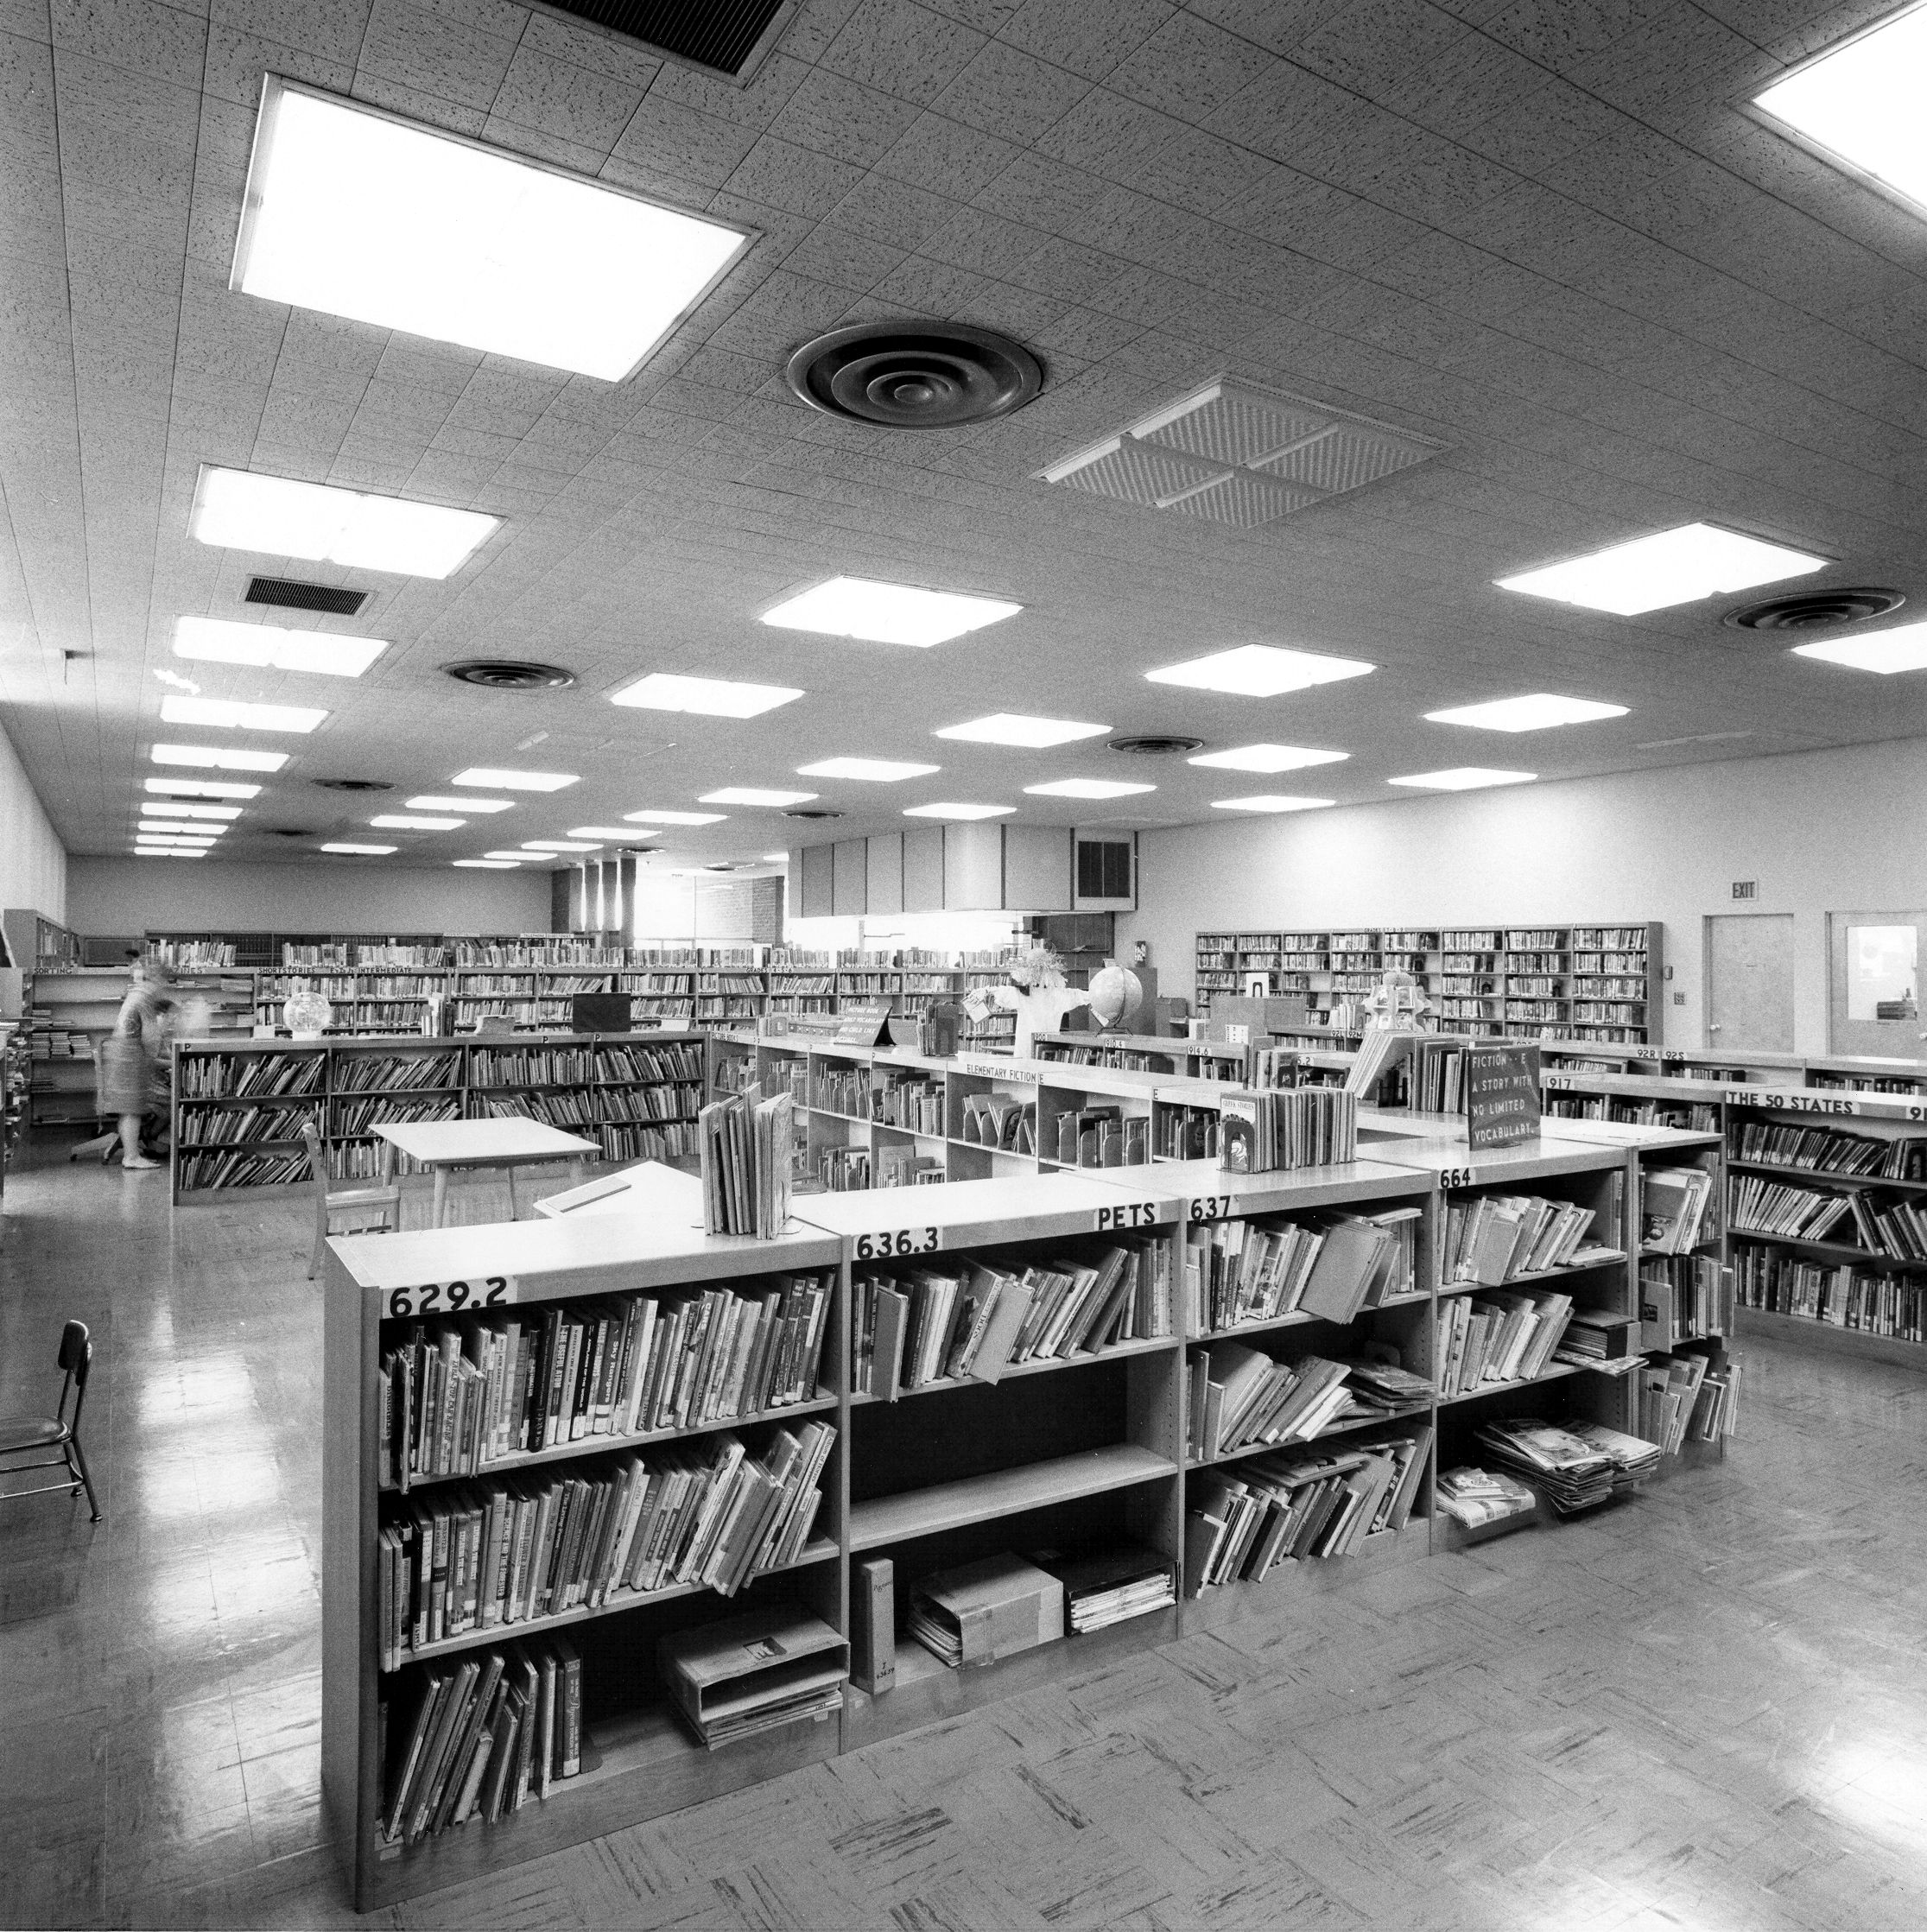 Downey Library 1967 Downey Historical Society image  85 33 112 edit.jpg